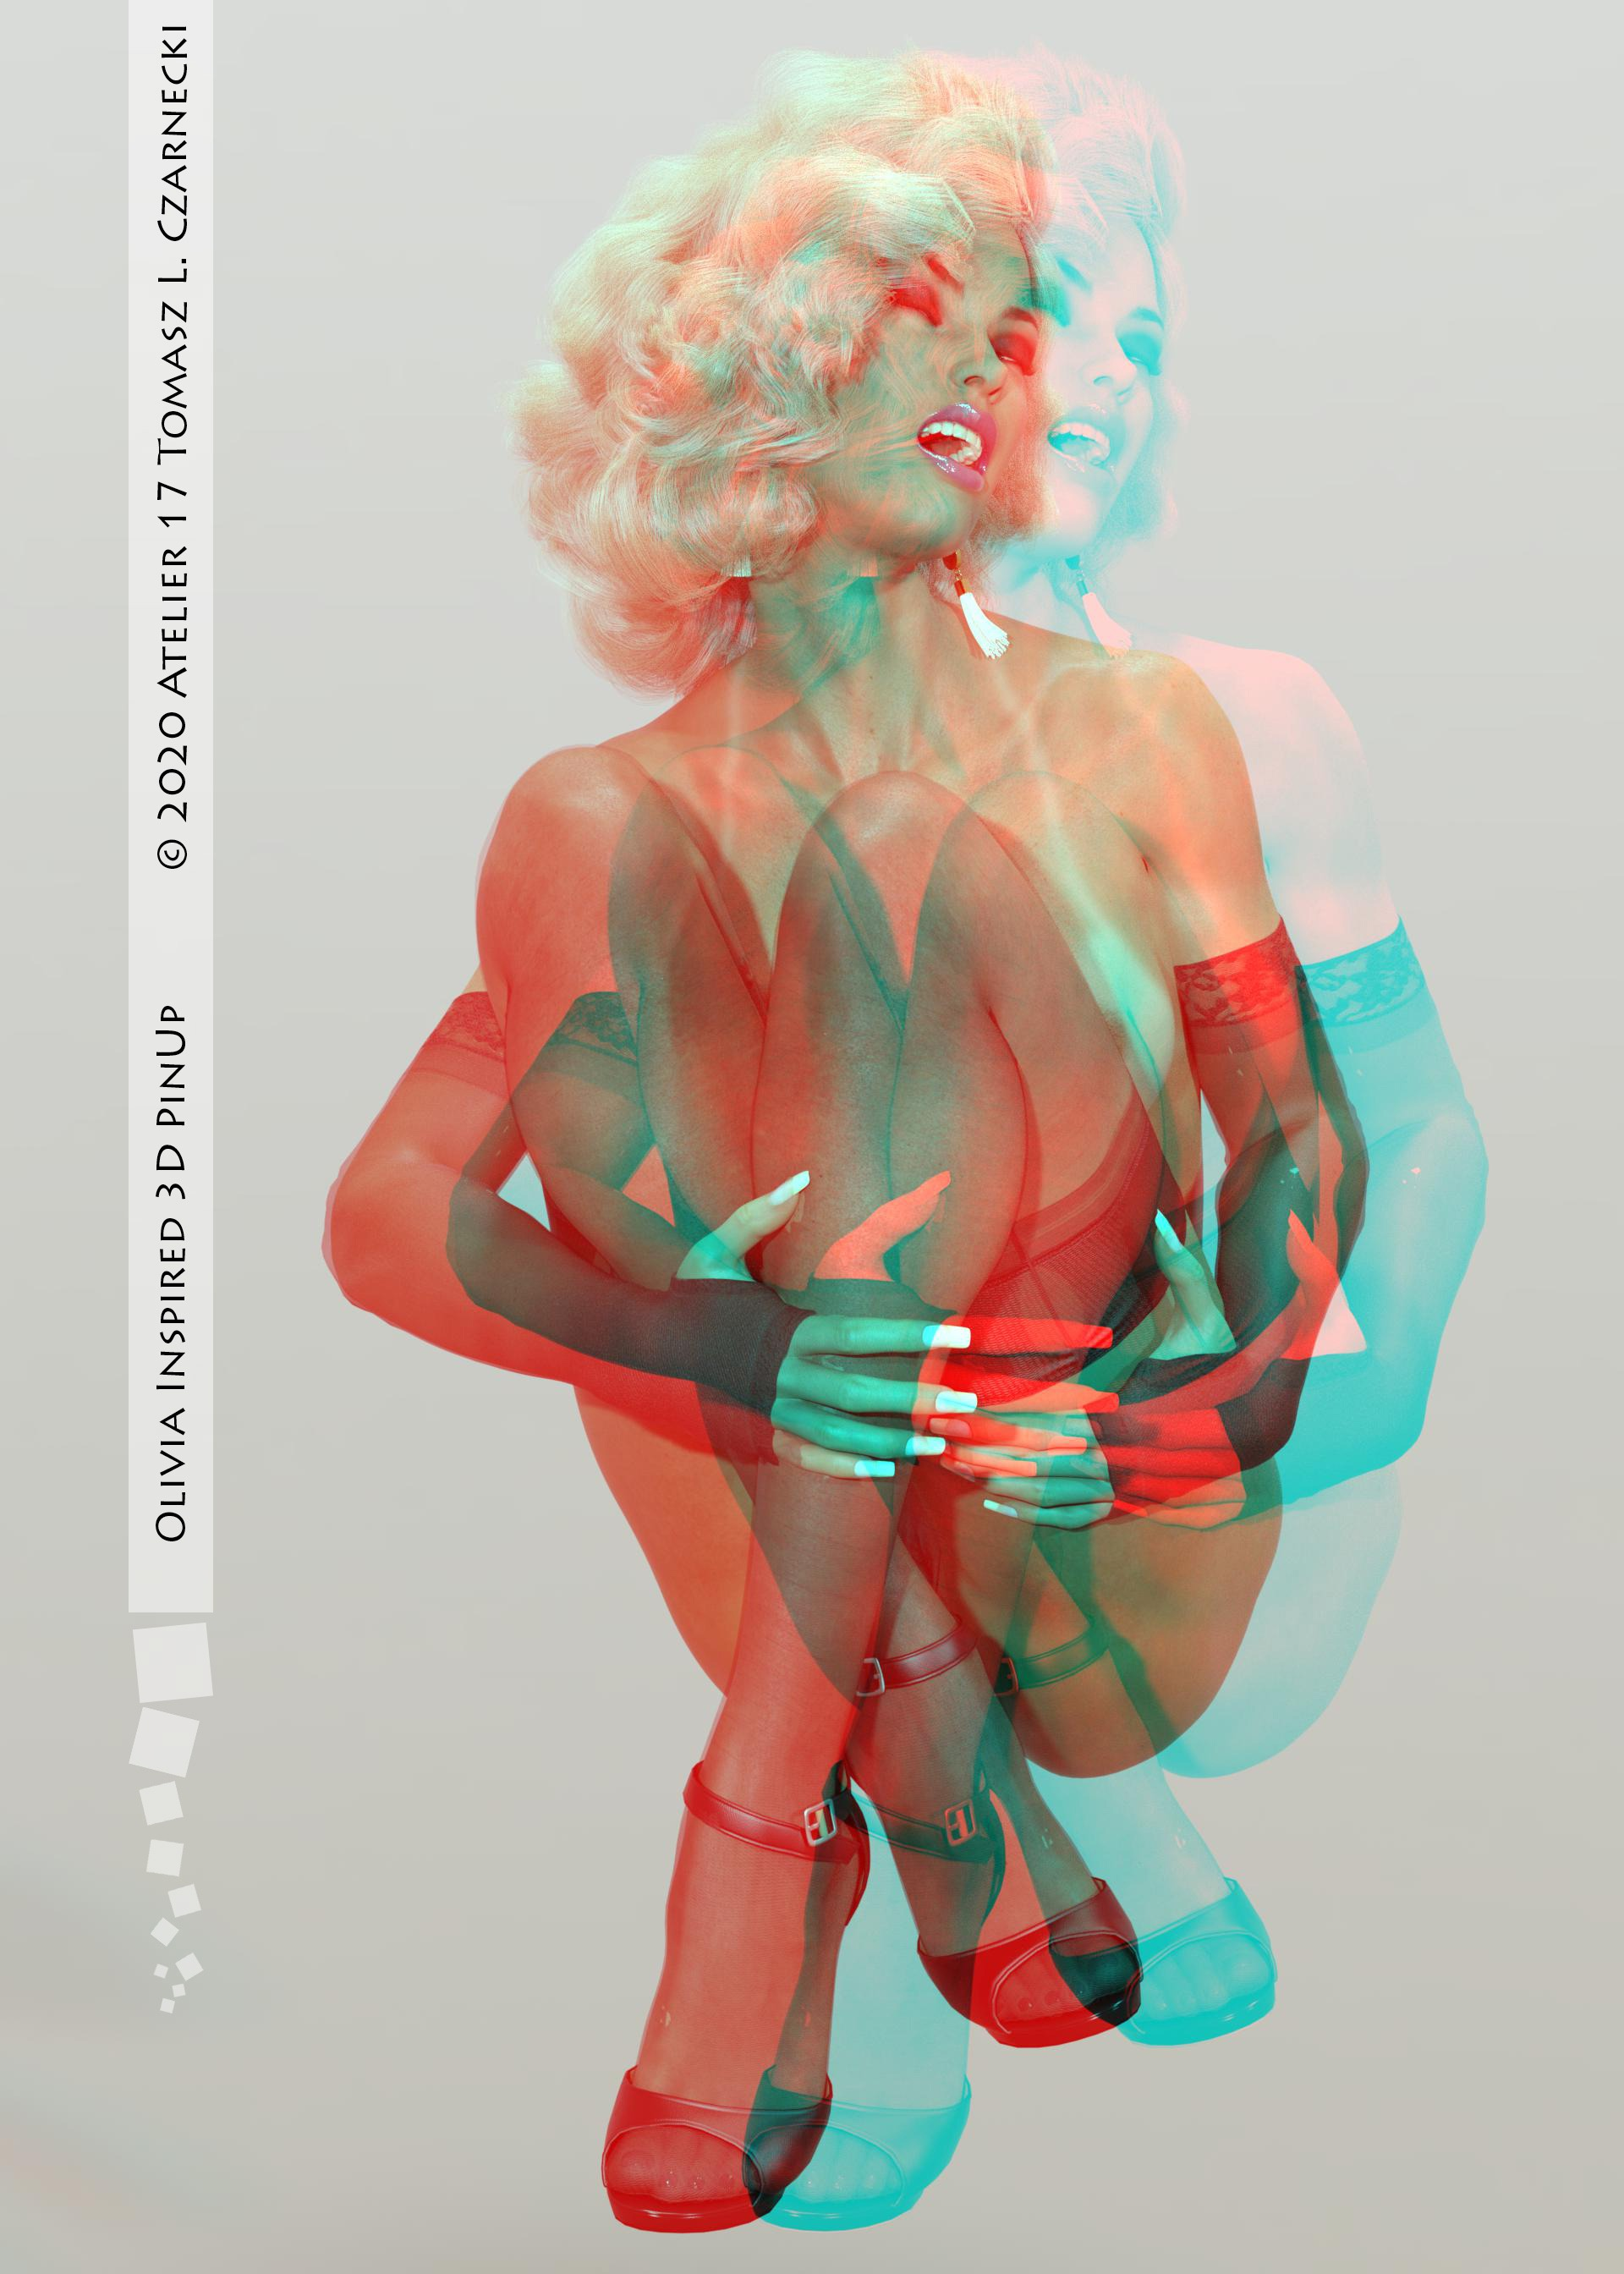 Anaglyph Pinup inspired by Olivia